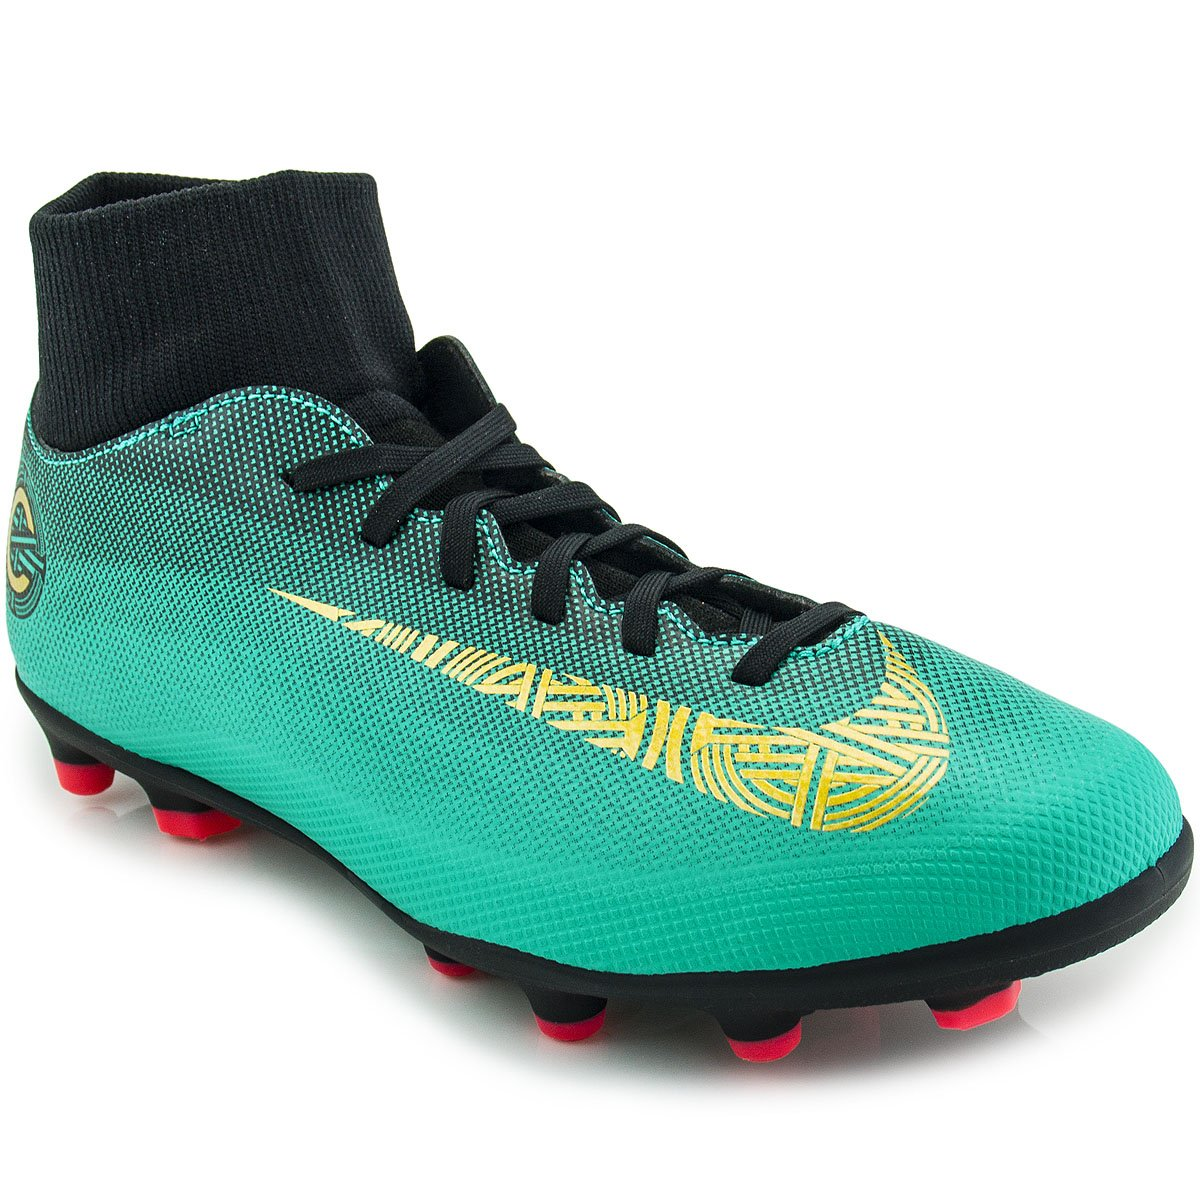 ... purchase chuteira nike mercurial superfly 6 club cr7 mg aj3545 a8e82  aae2e 7751e038de799